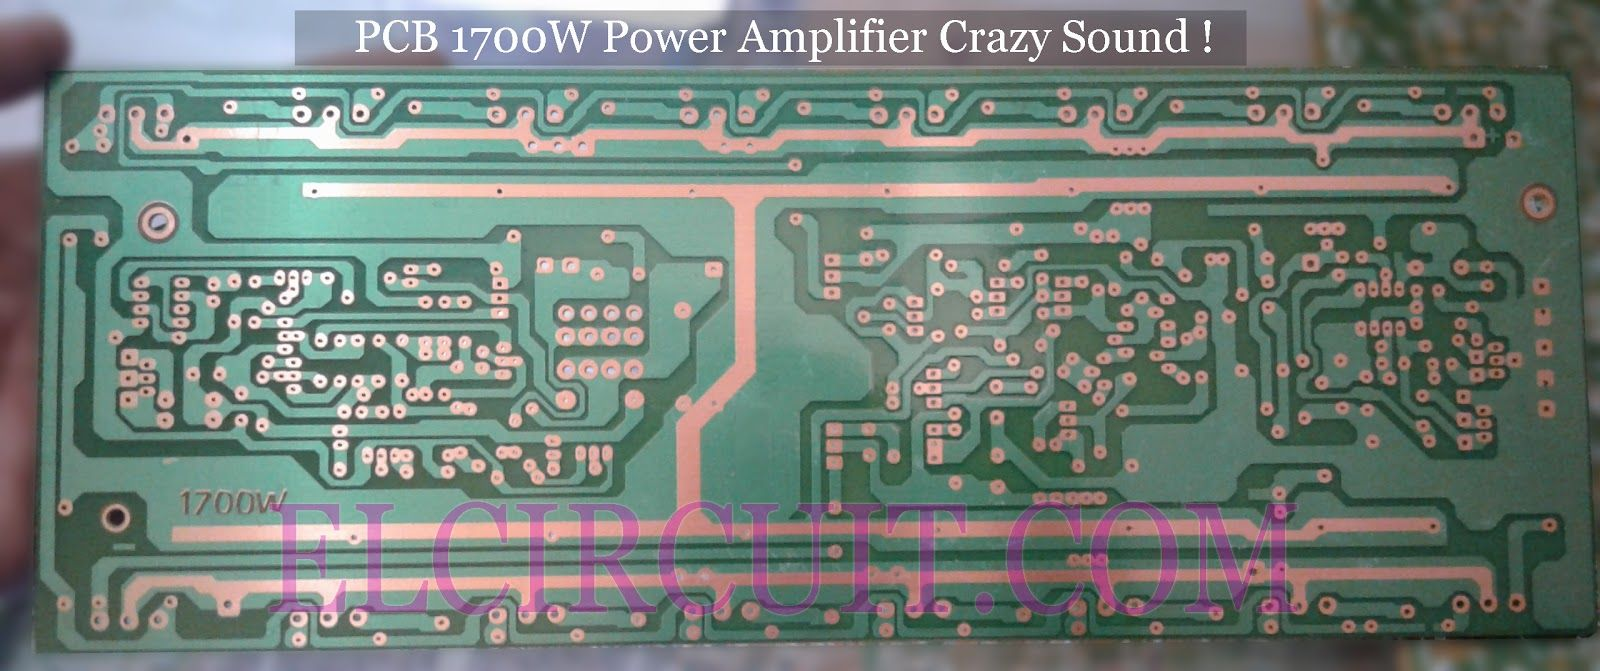 Crazy Sound 1700w Power Amplifier Circuit In 2018 Technology Electronic With Pcb Layout